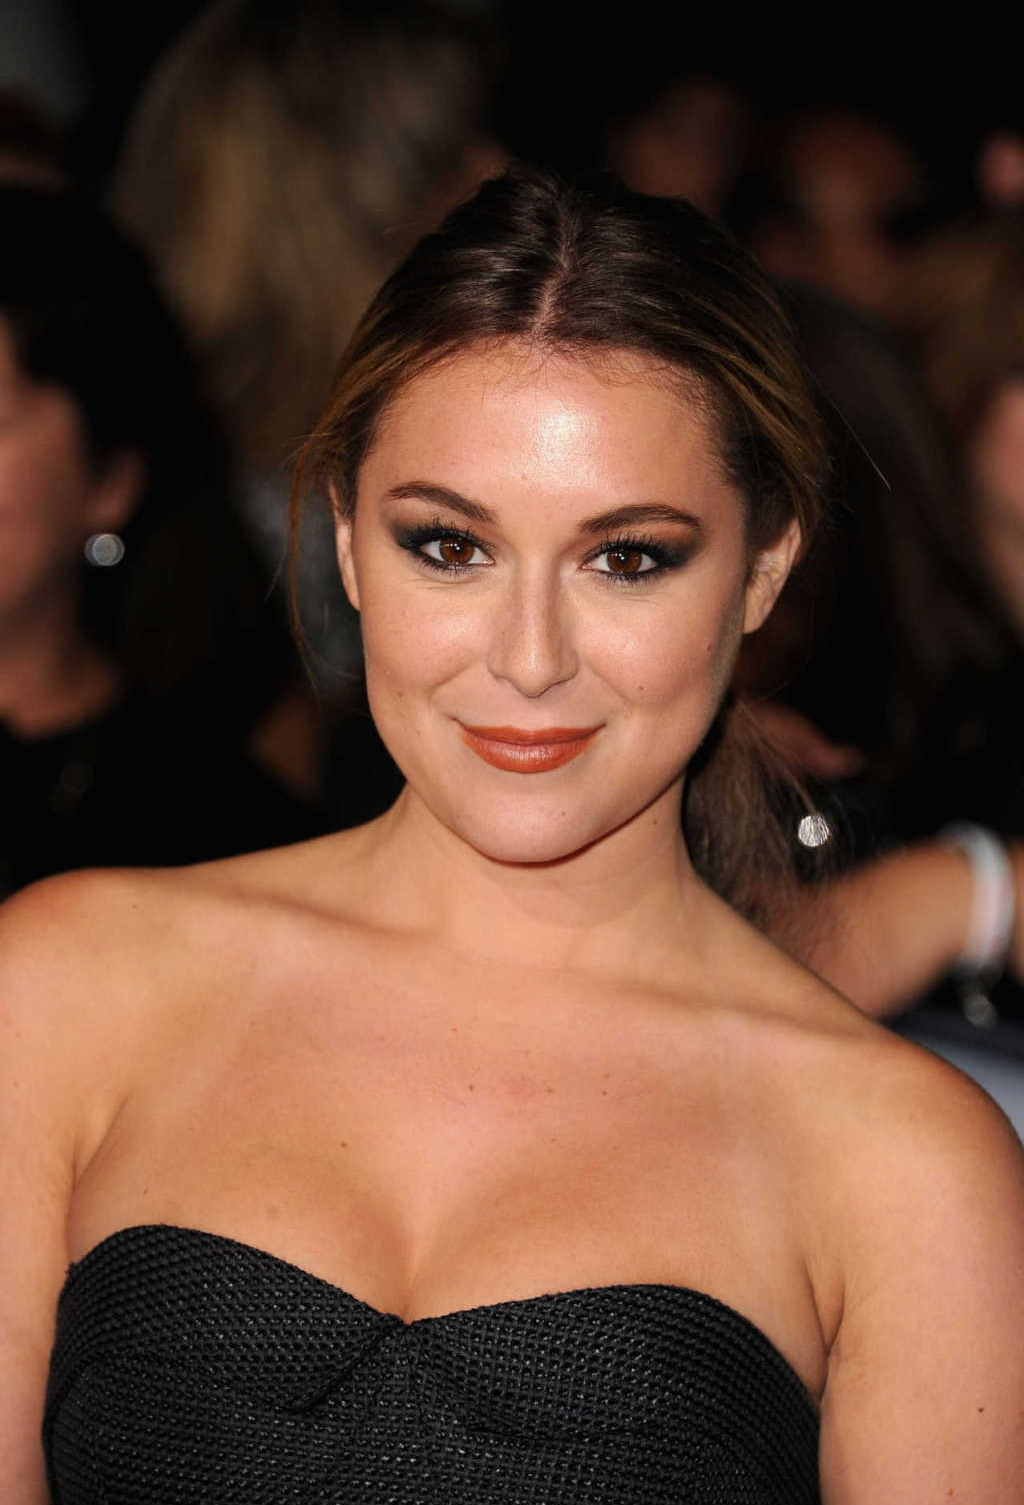 Alexa Vega HD Photos at The Twilight Saga Breaking Dawn 2 Premiere